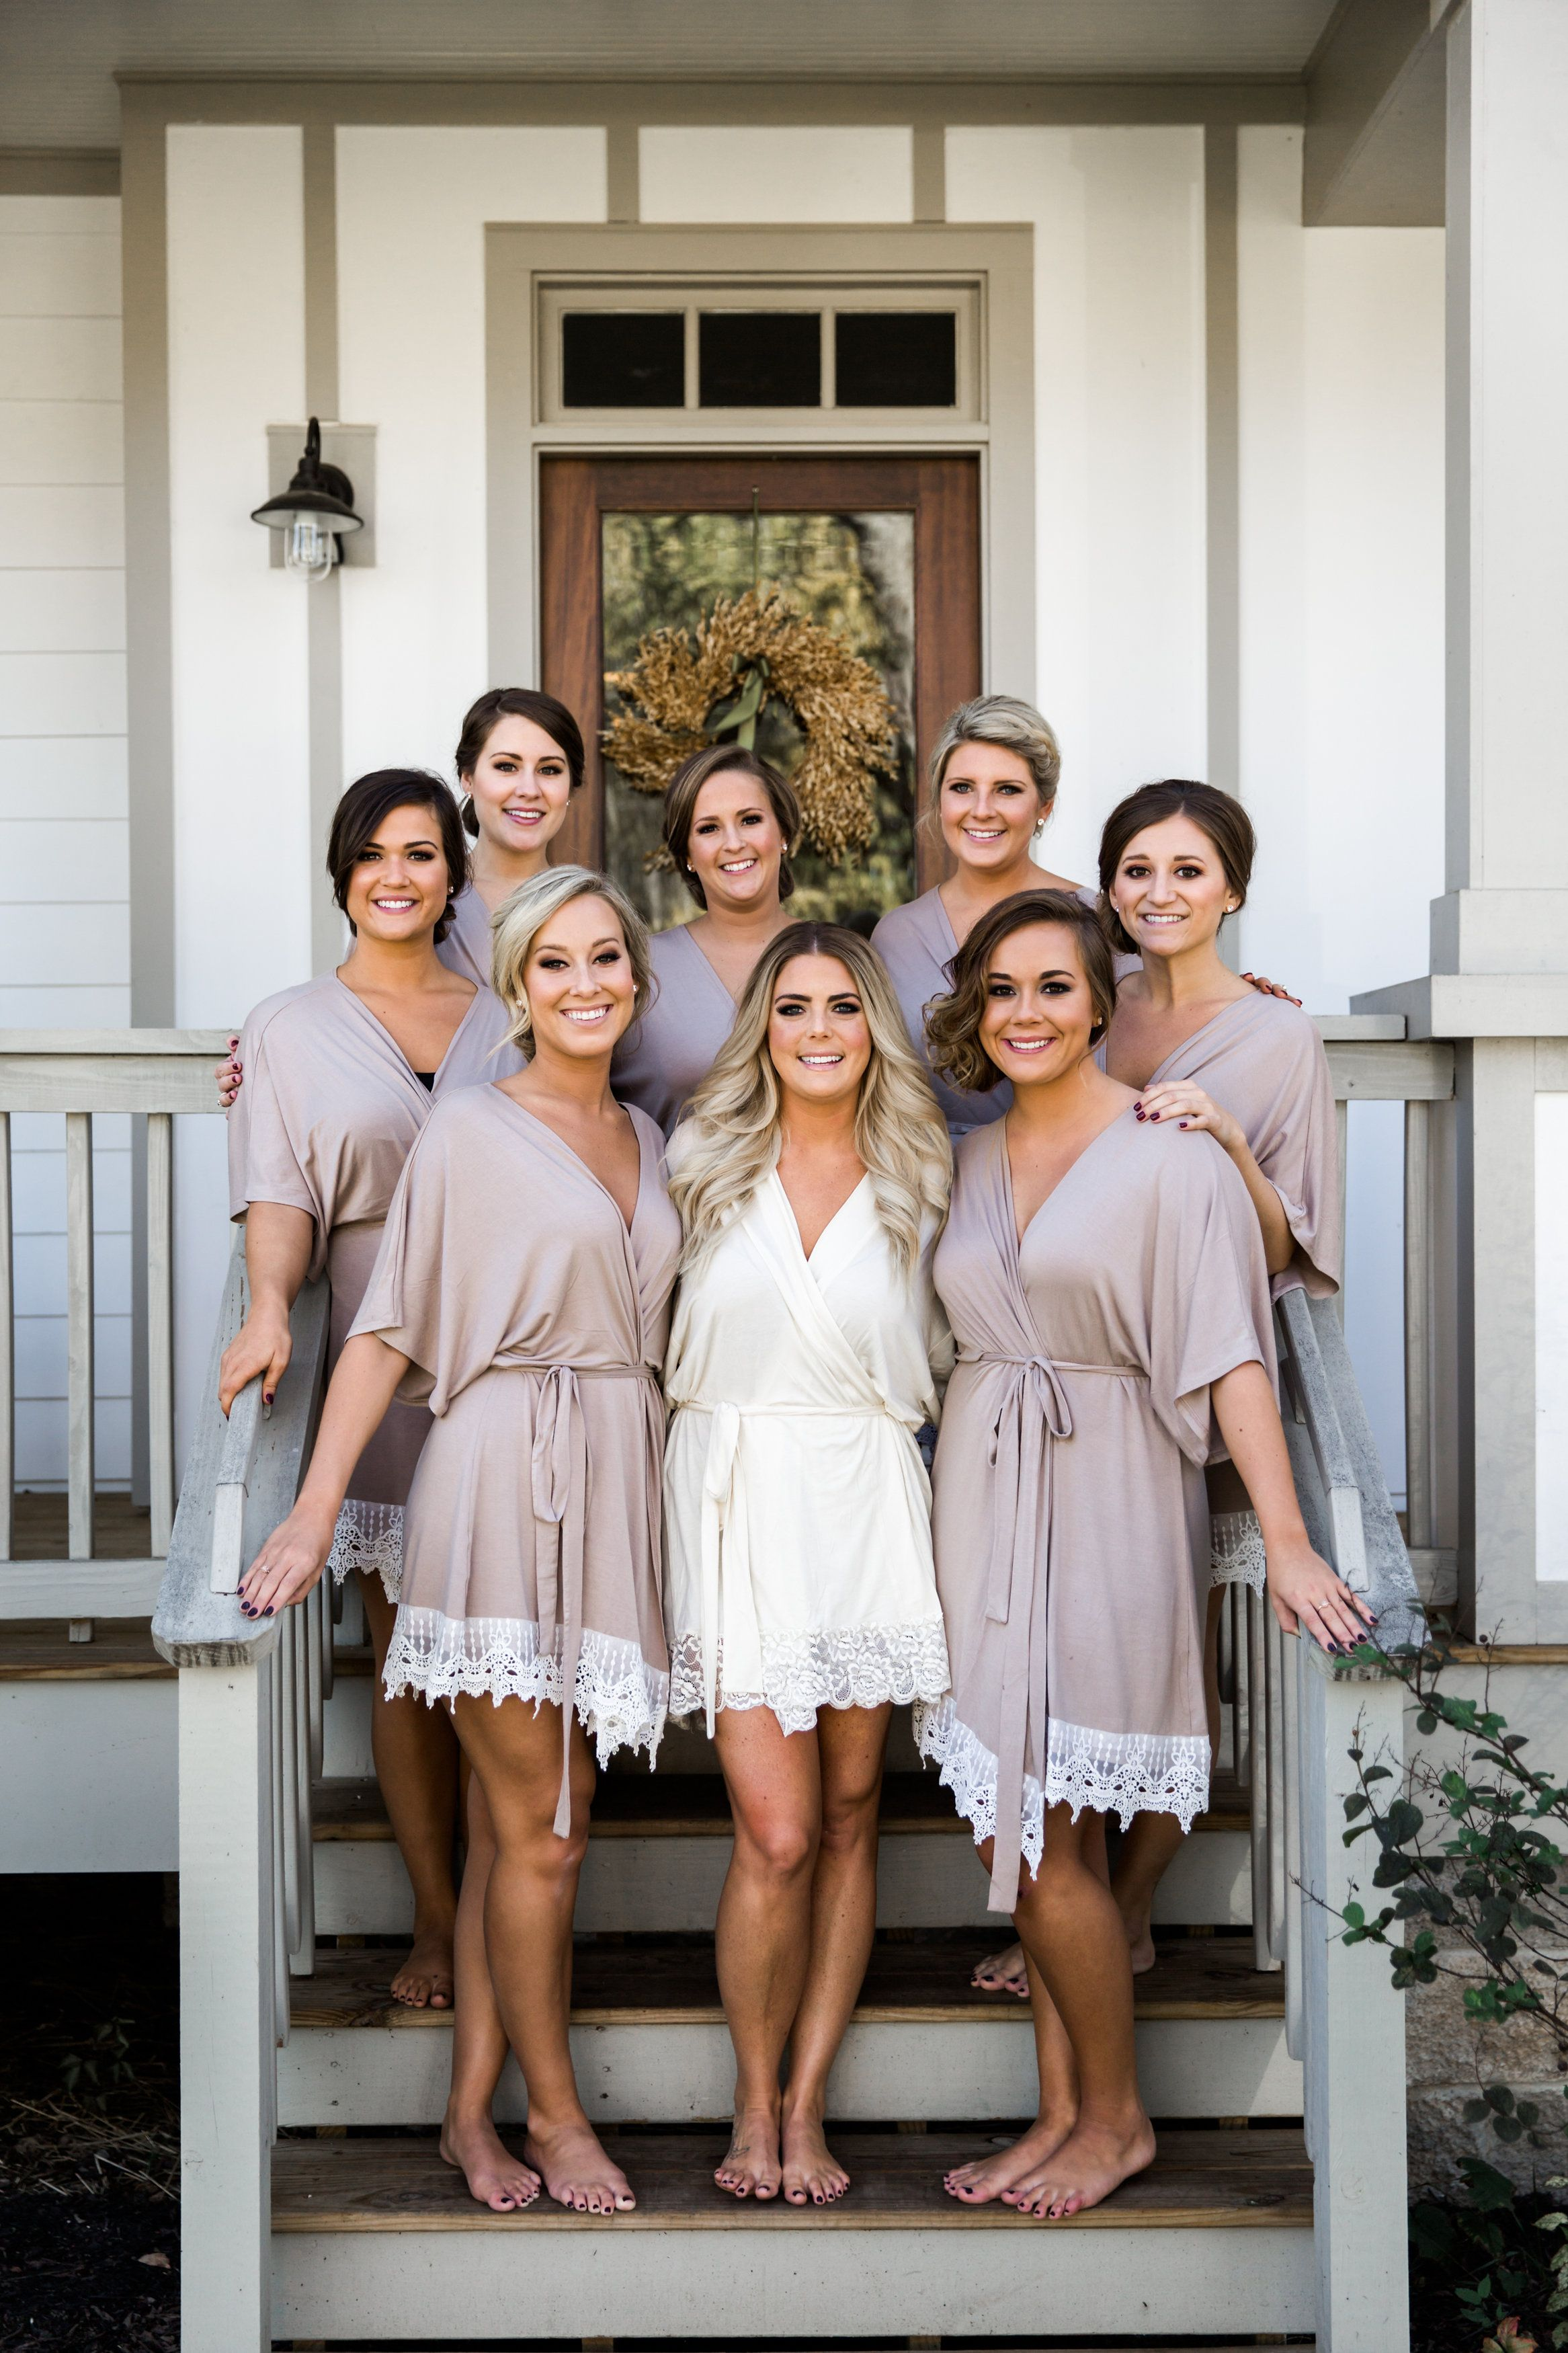 Bride and bridesmaids in matching robes getting ready for ...